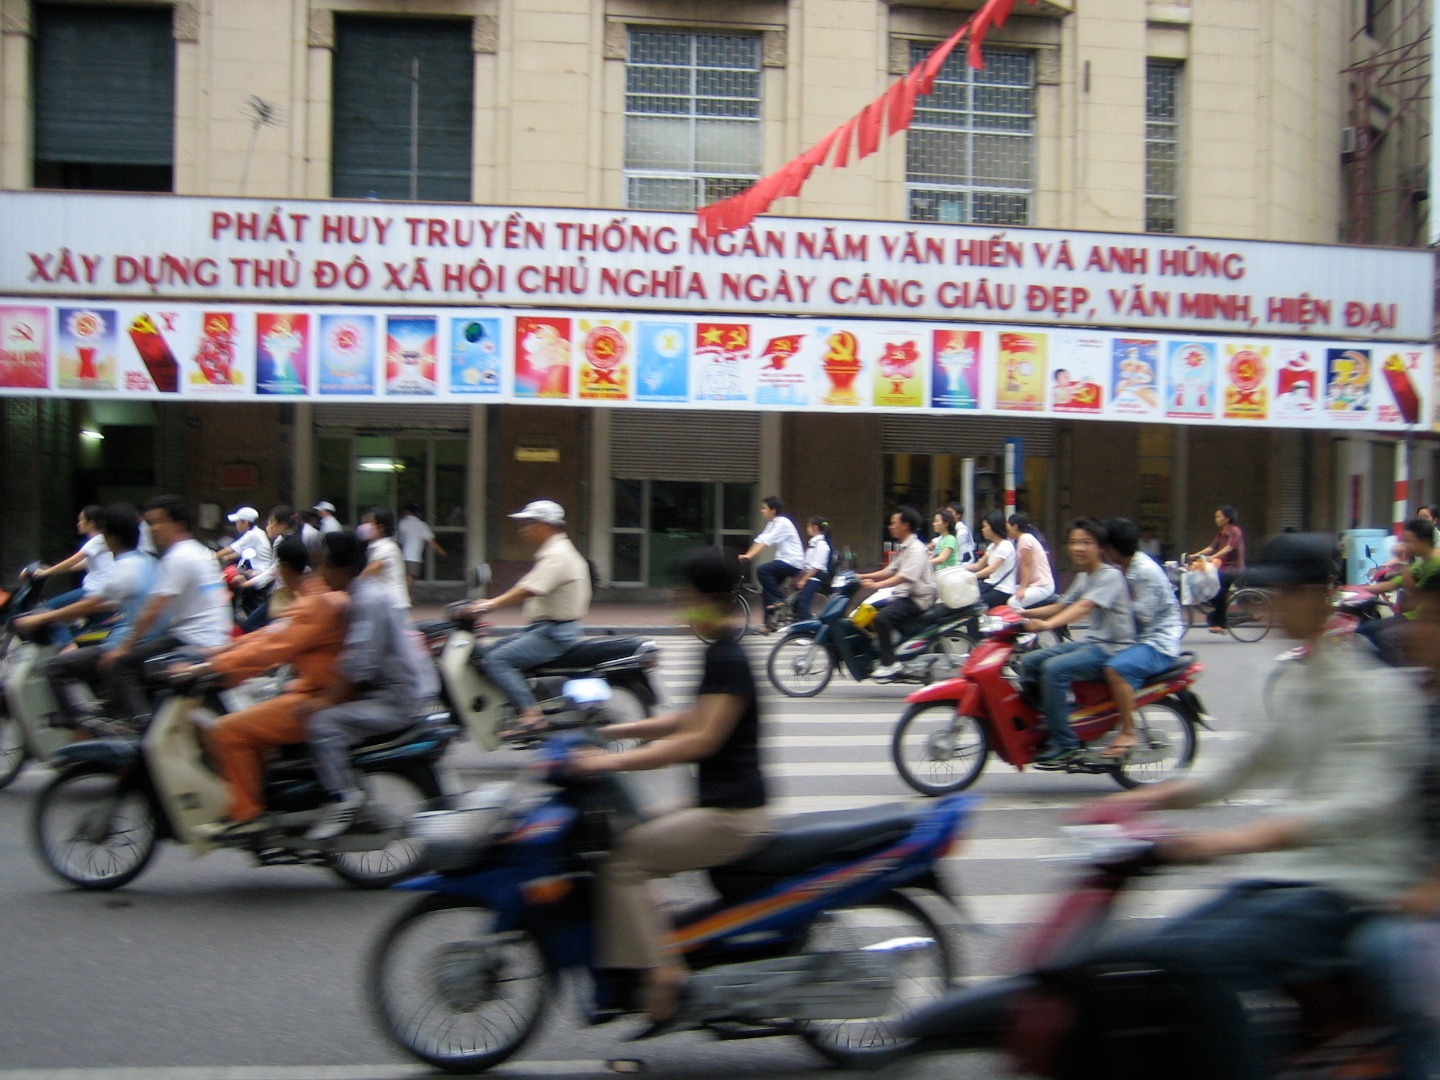 Hanoi plans to ban motorcycles altogether by 2030